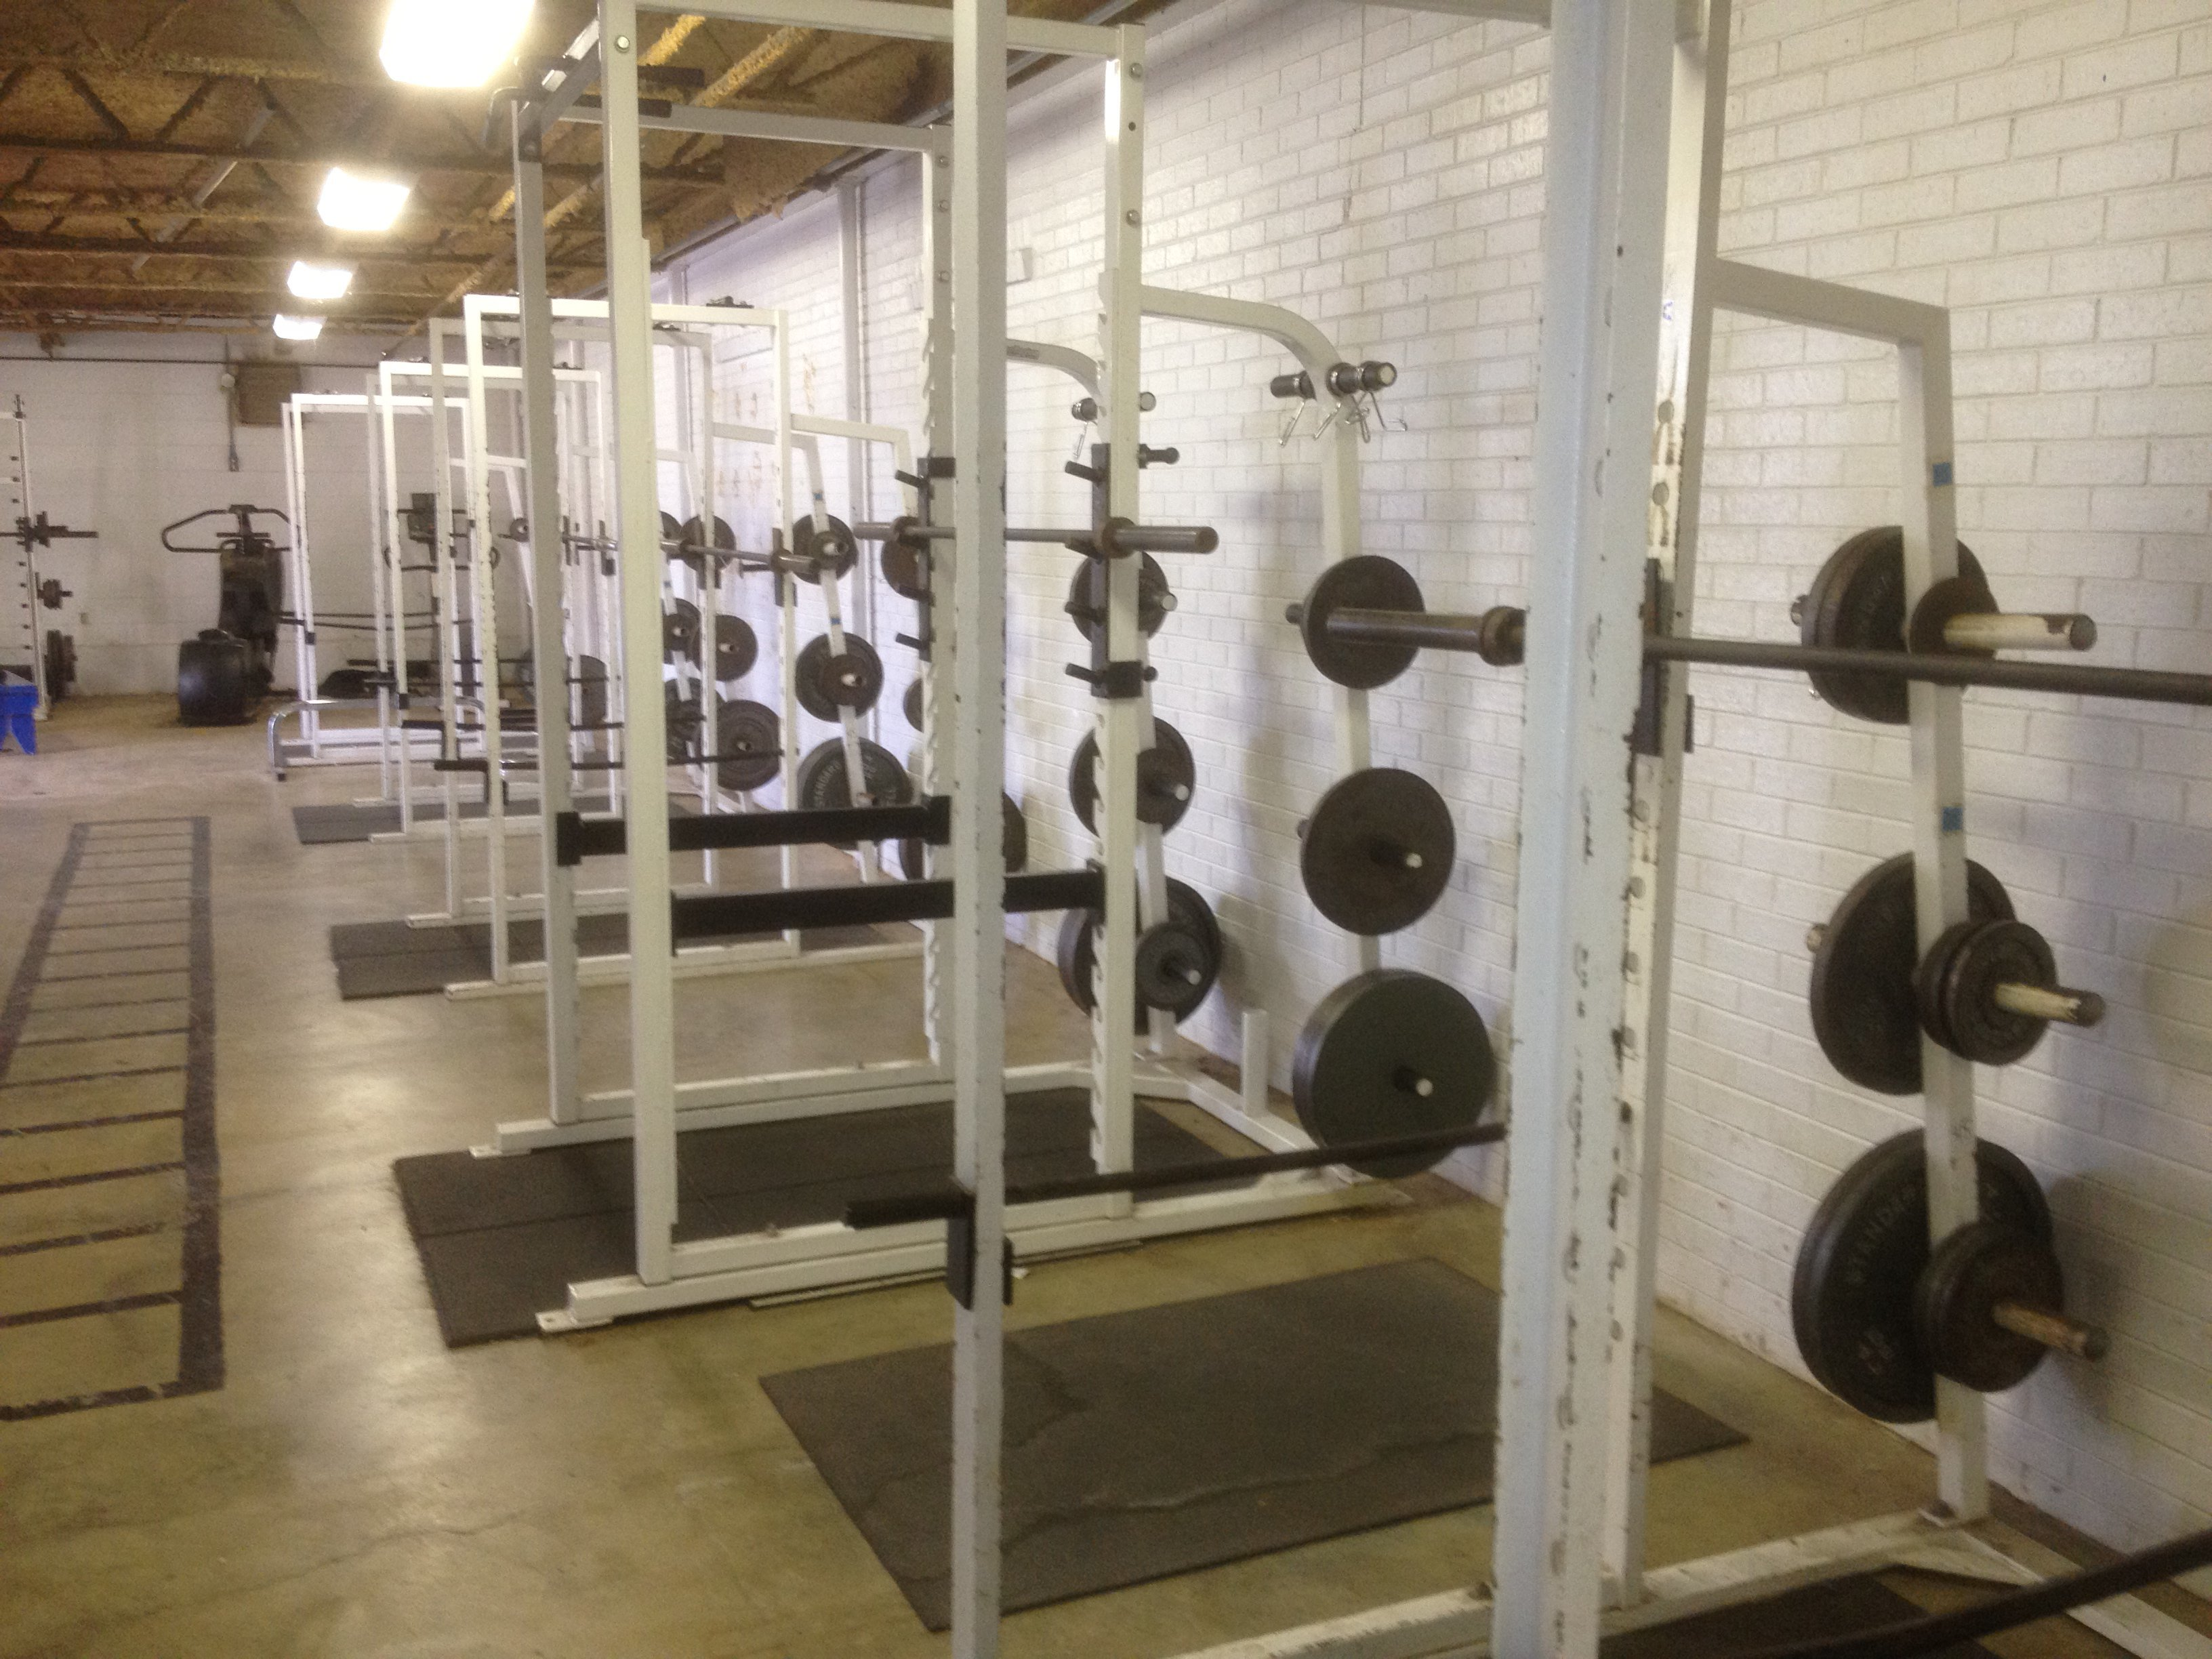 weight-room.JPG#asset:1889